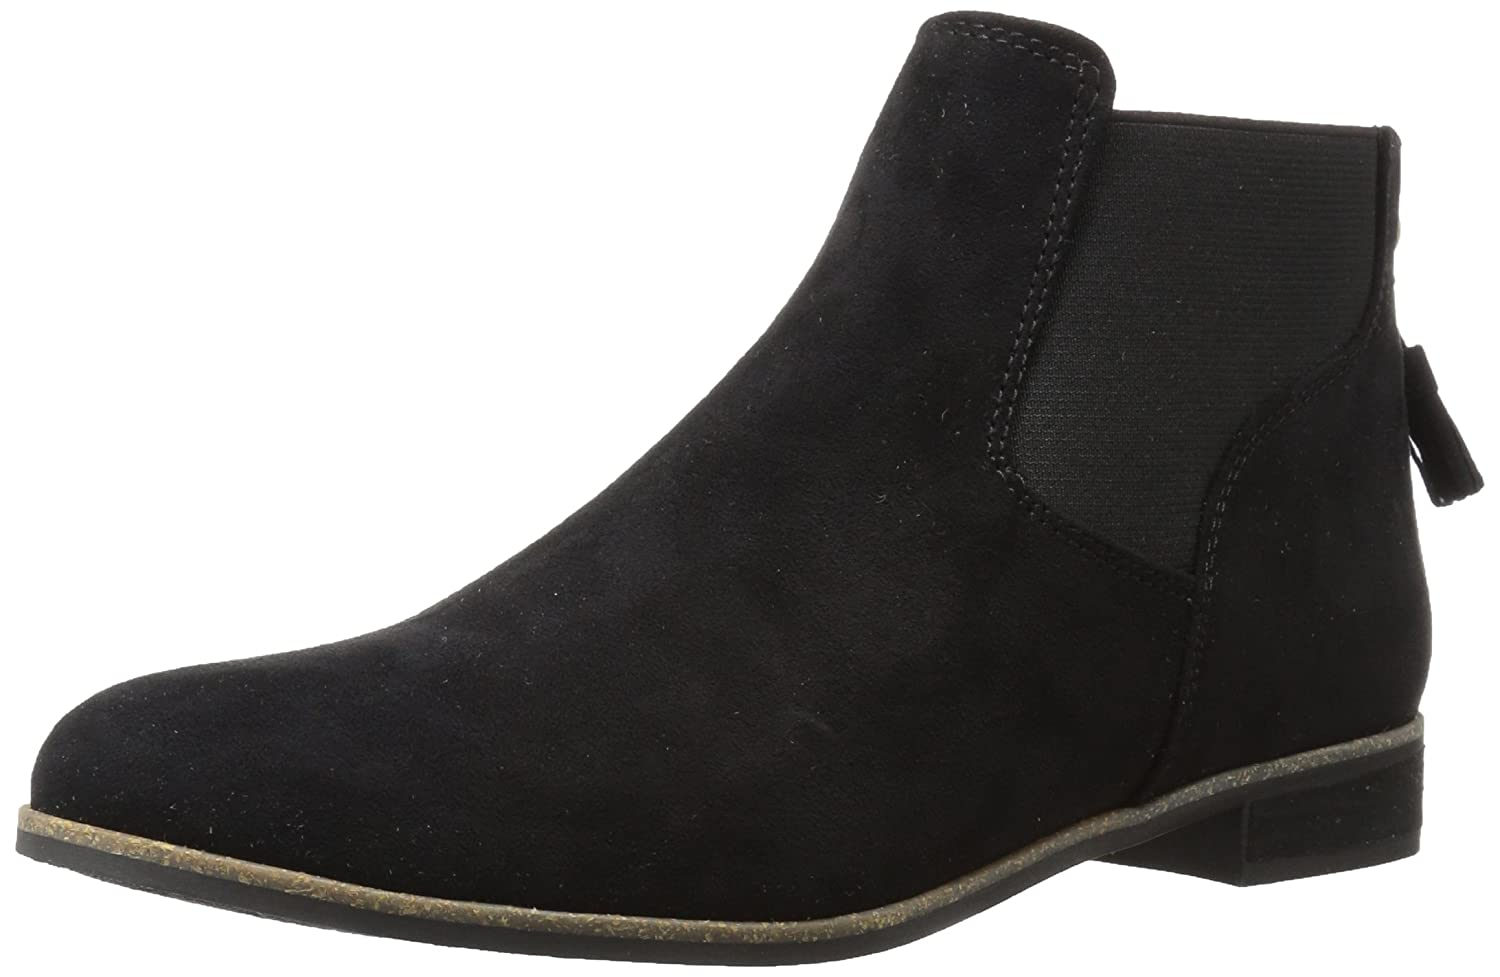 Dr. Scholl's Shoes Women's Resource Boot B06Y1JQG9J 7.5 B(M) US|Black Microfiber